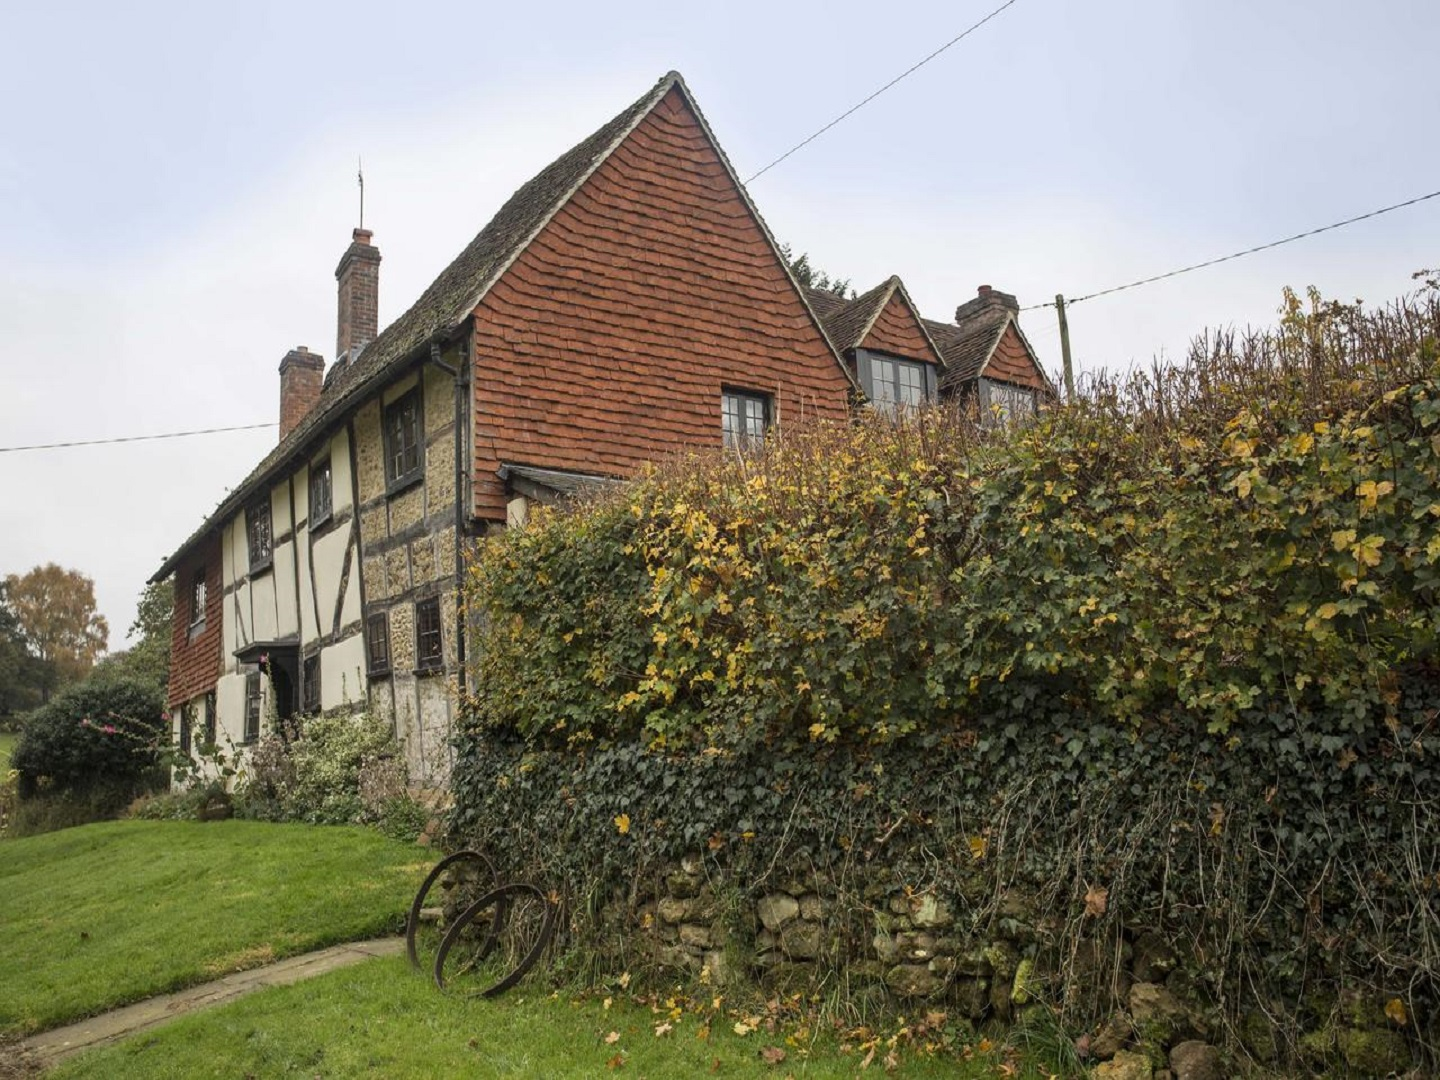 A large brick building with grass and trees at Lockhurst Hatch Farm.